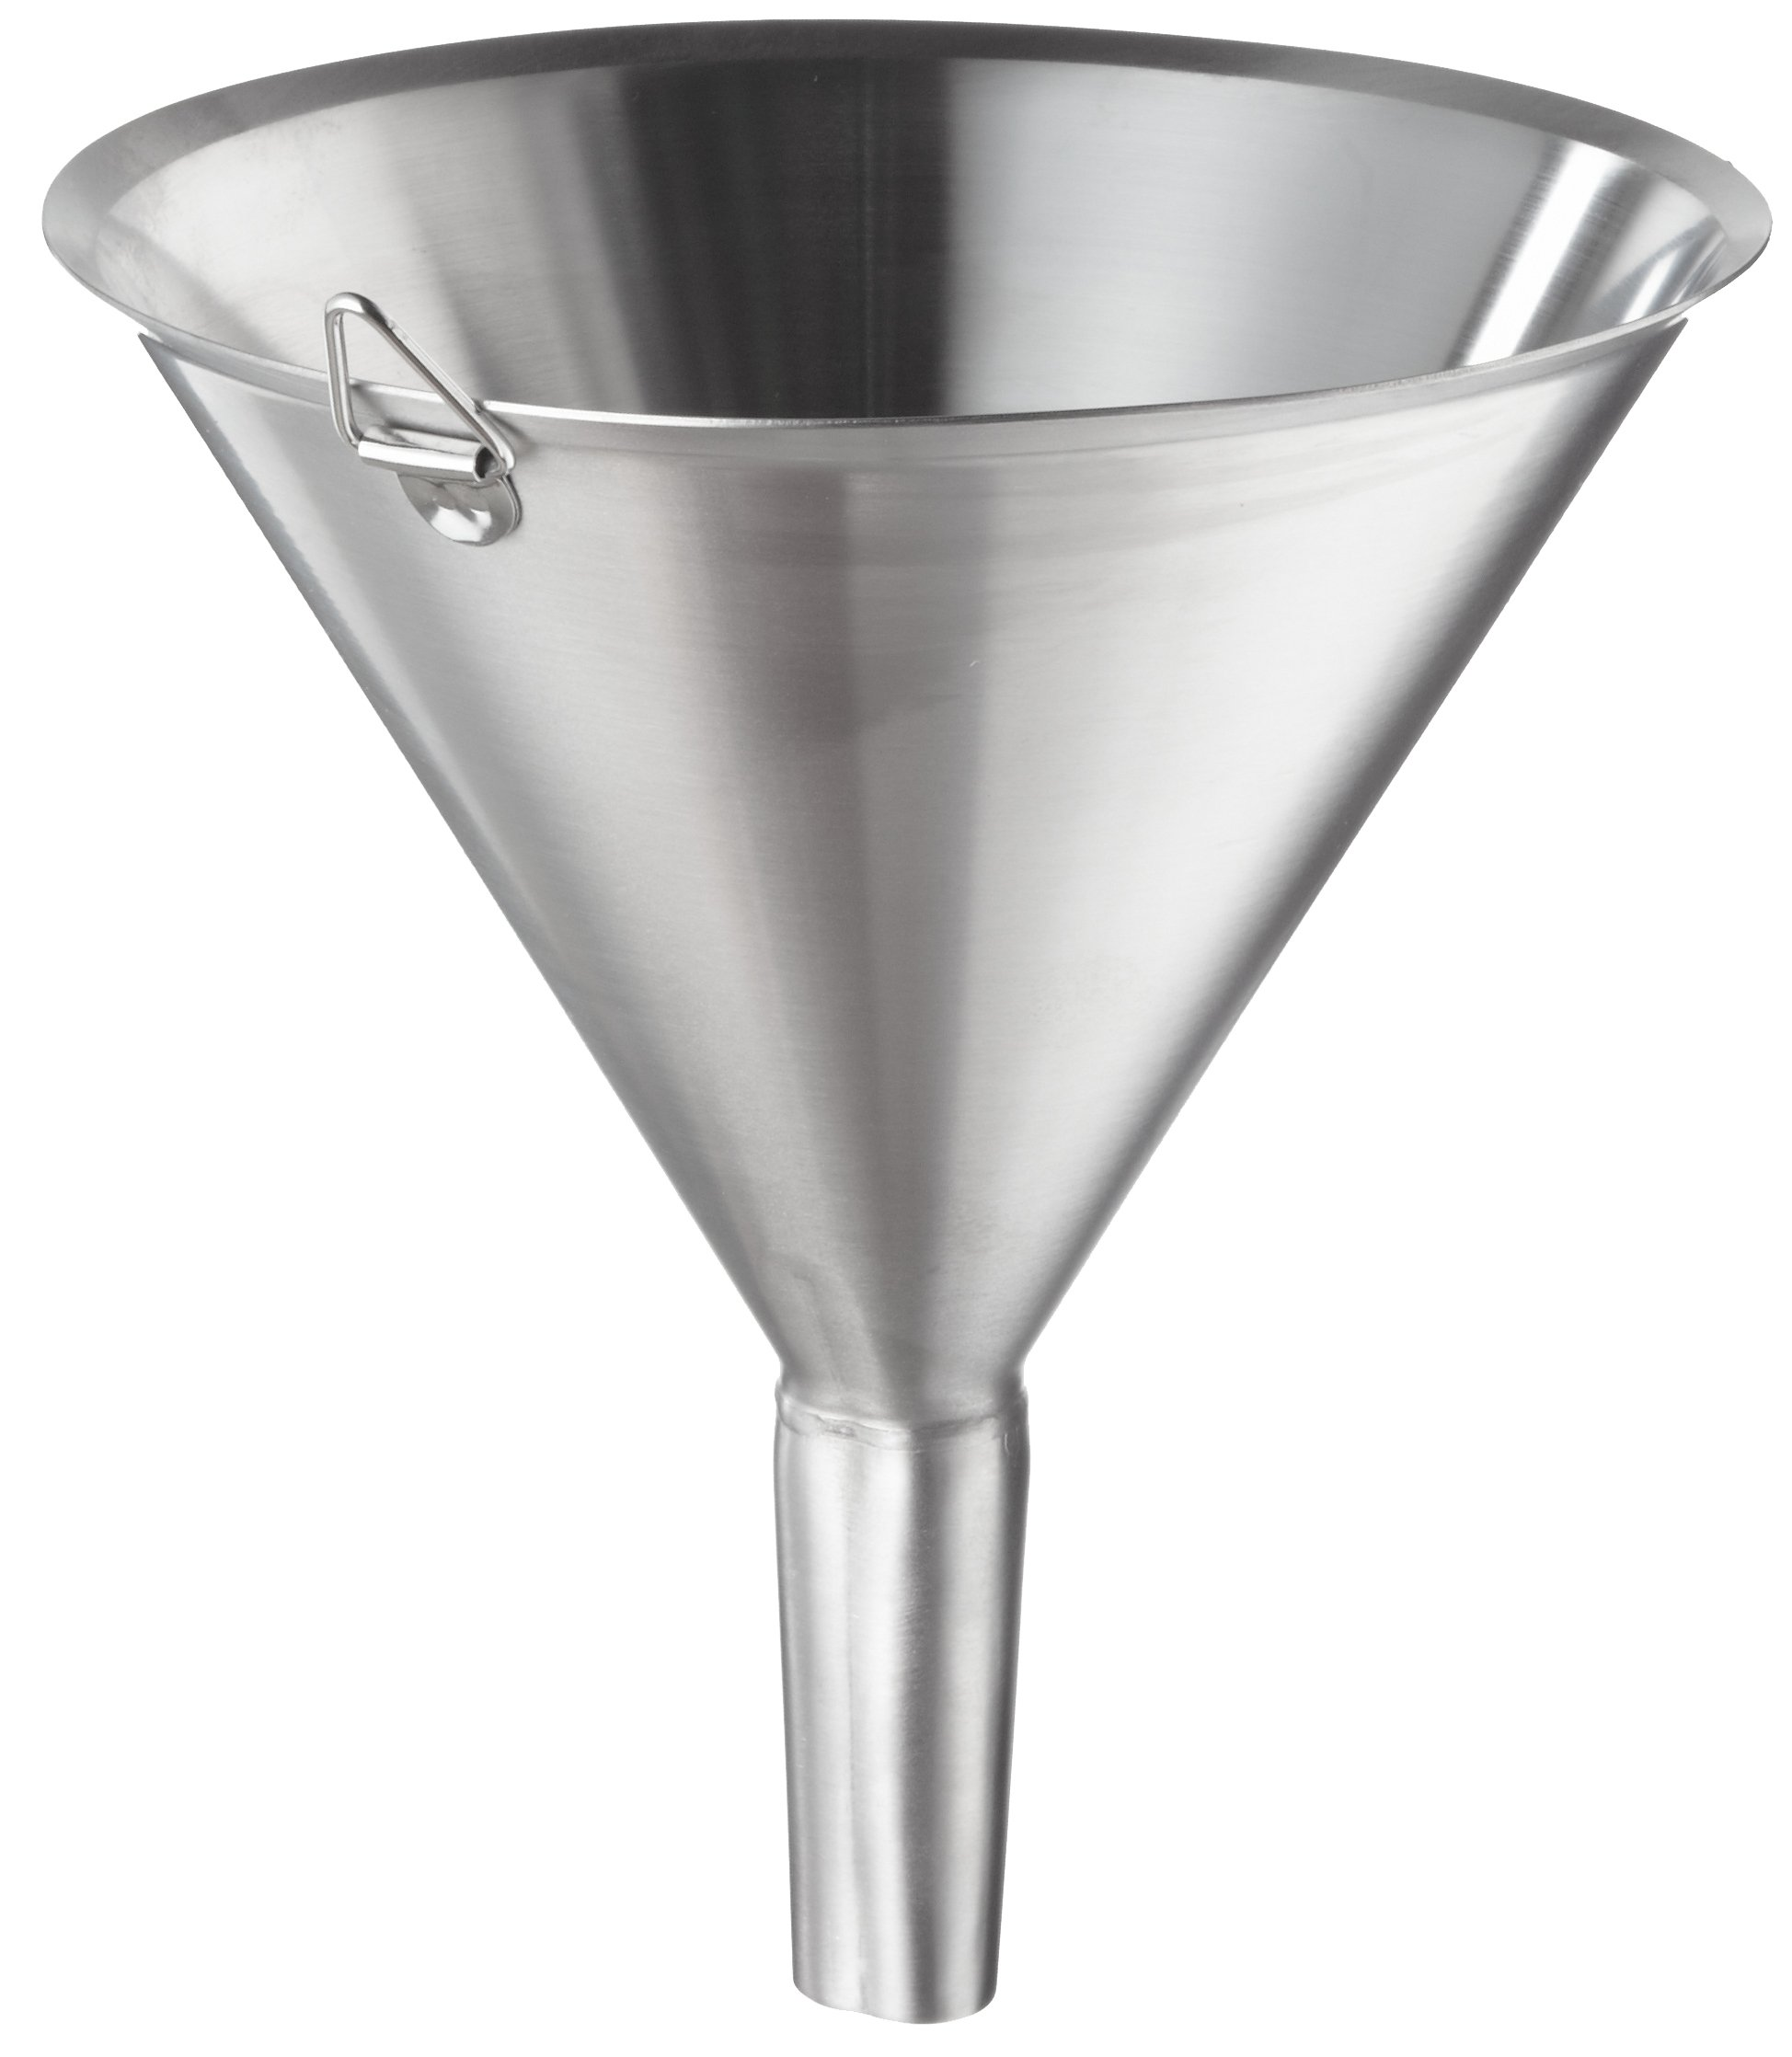 Polar Ware T1808F Stainless Steel Utility Funnel, 8-3/8'' OD x 9-1/2'' H, 64 oz. Capacity